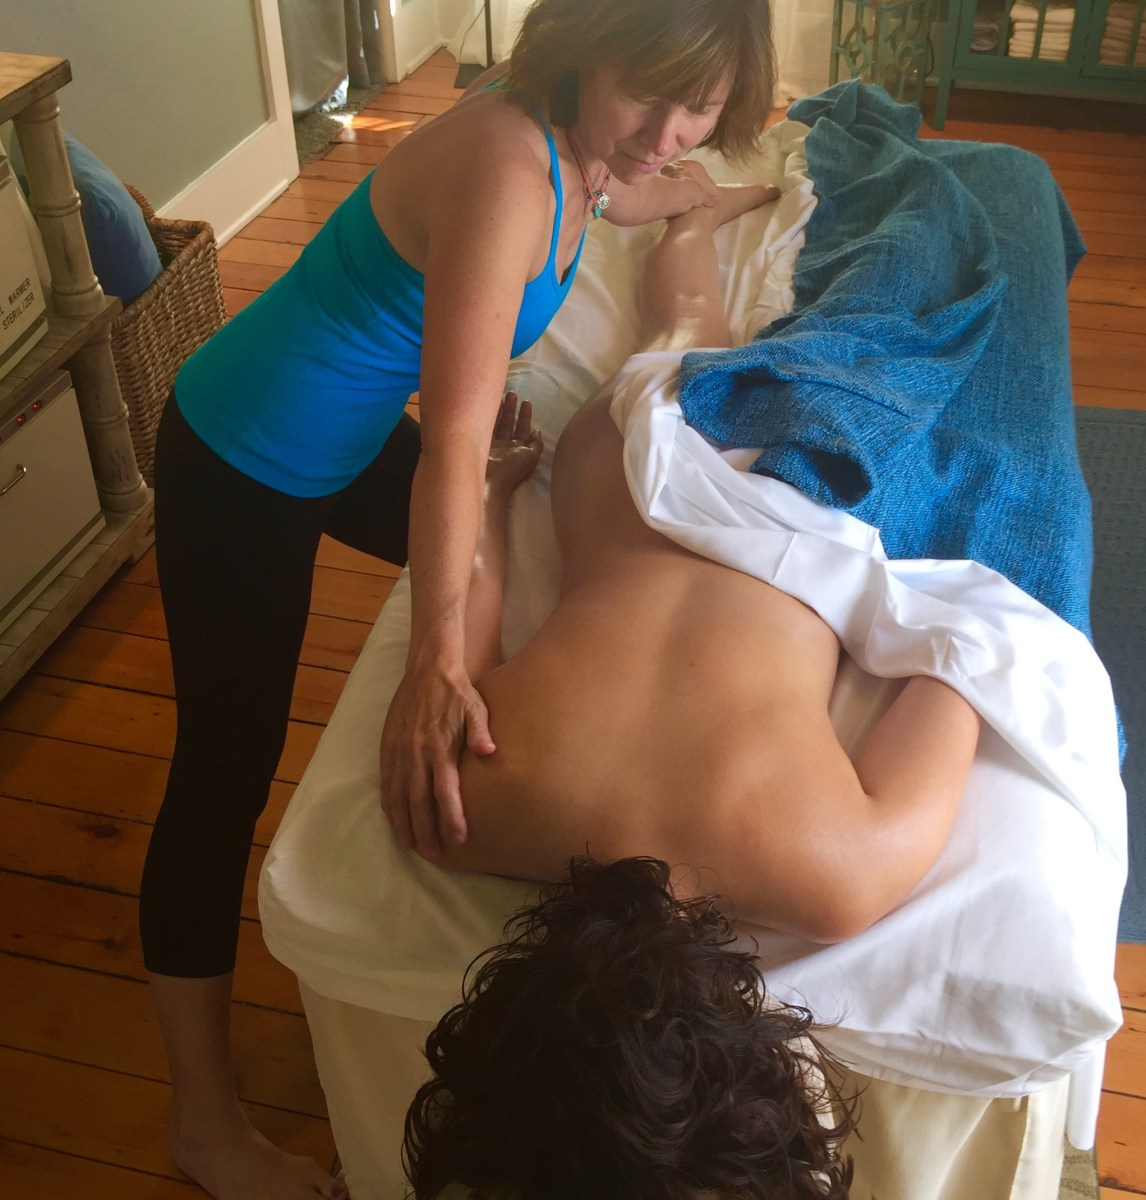 Massage therapist with hand on shoulder and foot of client